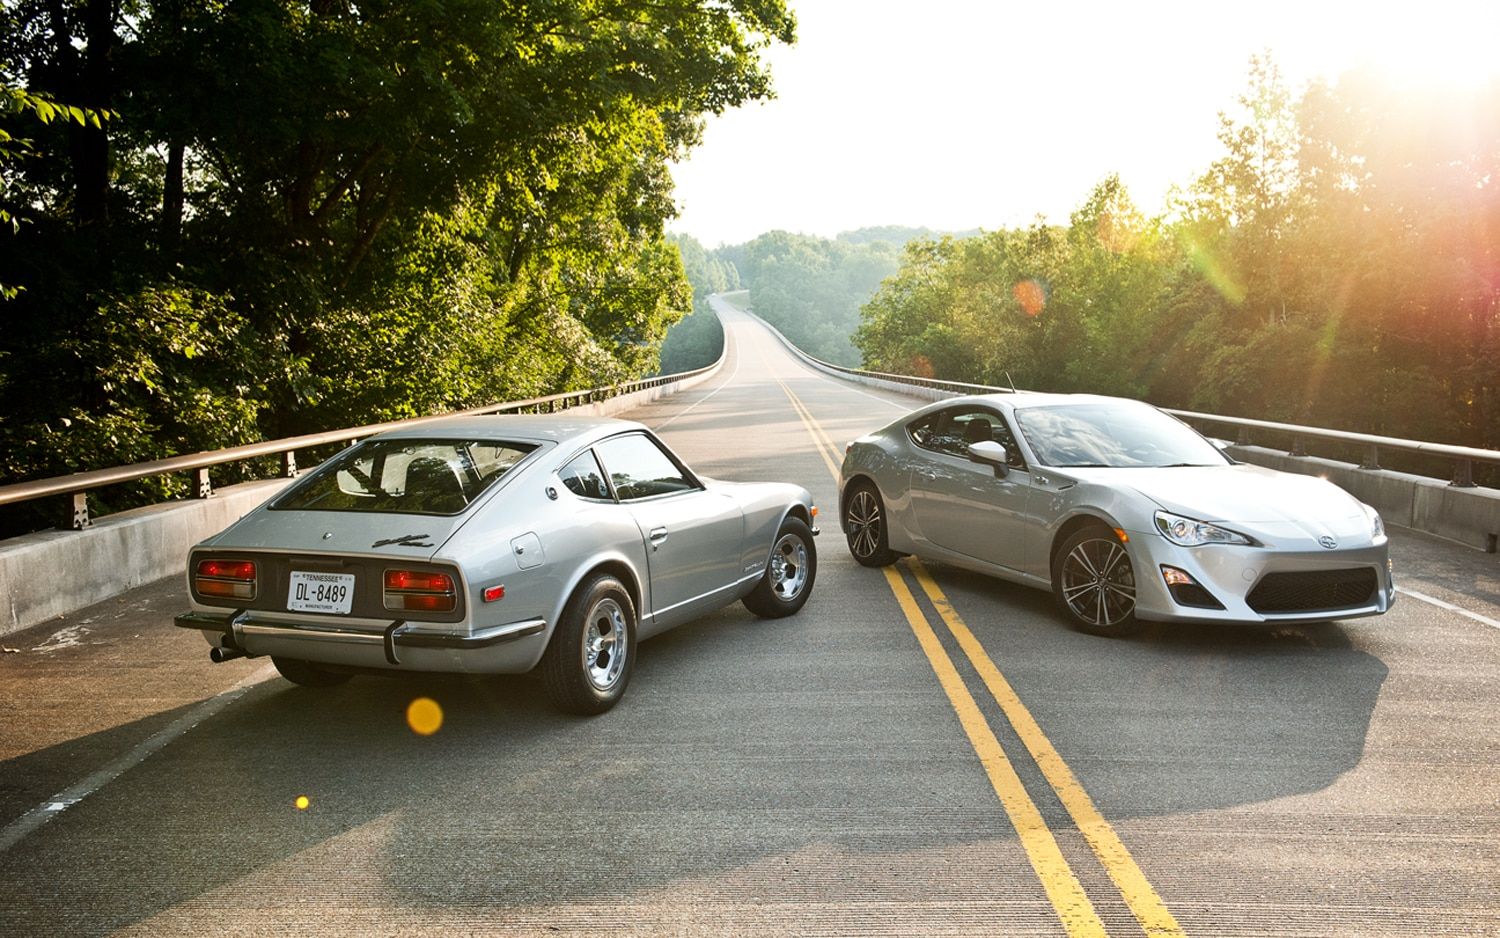 1971 Datsun 240Z And 2013 Scion FR S Parked1